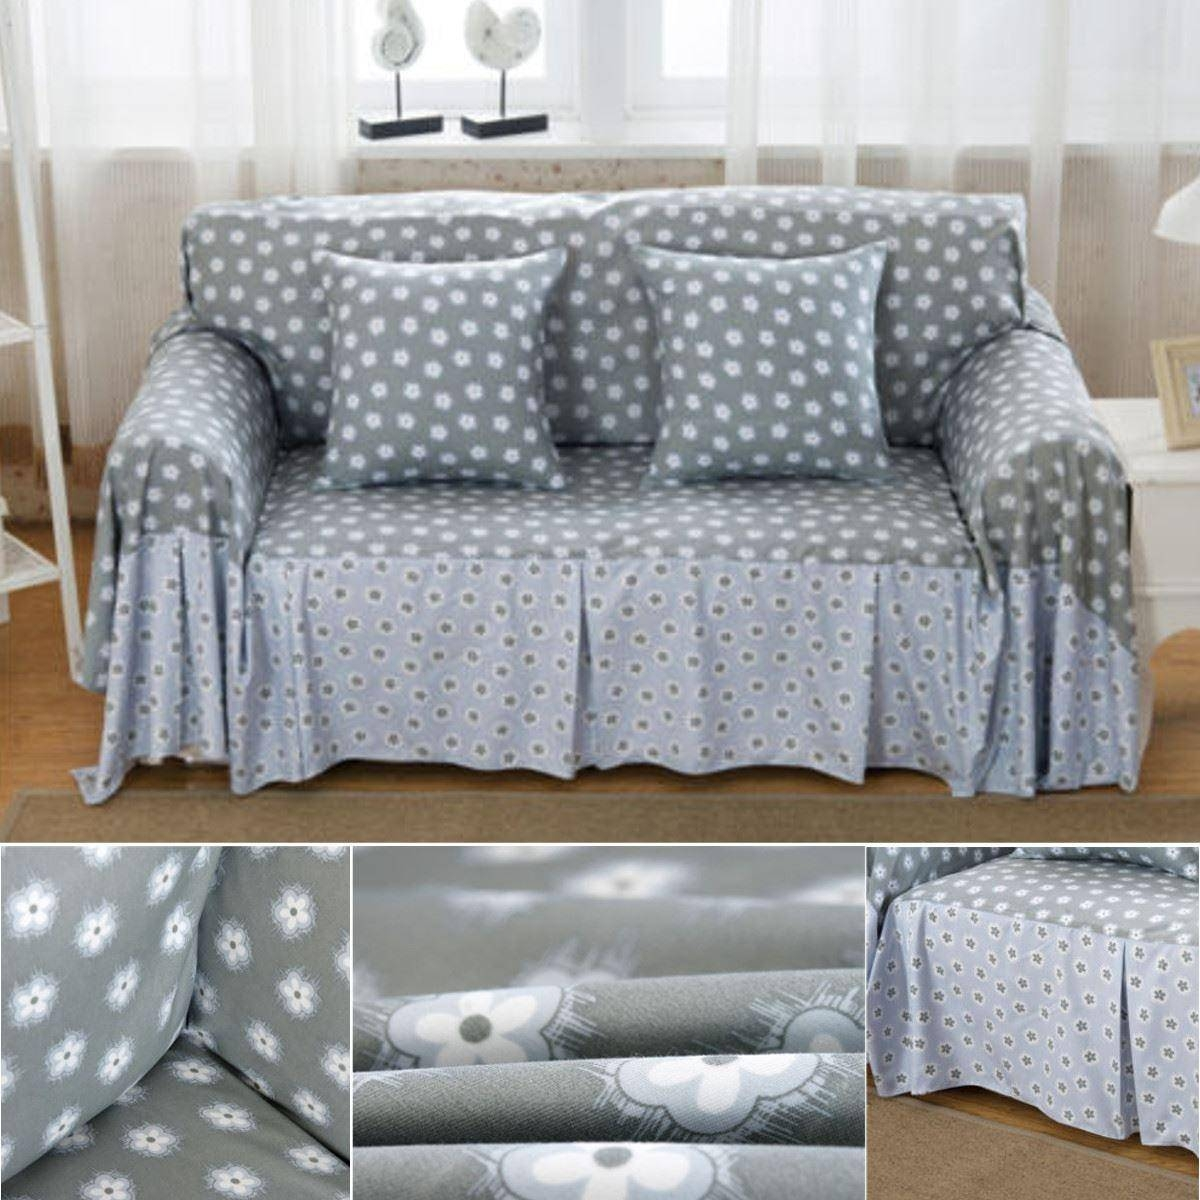 20 Inspirations 3 Piece Slipcover Sets | Sofa Ideas with regard to 3 Piece Slipcover Sets (Image 6 of 15)